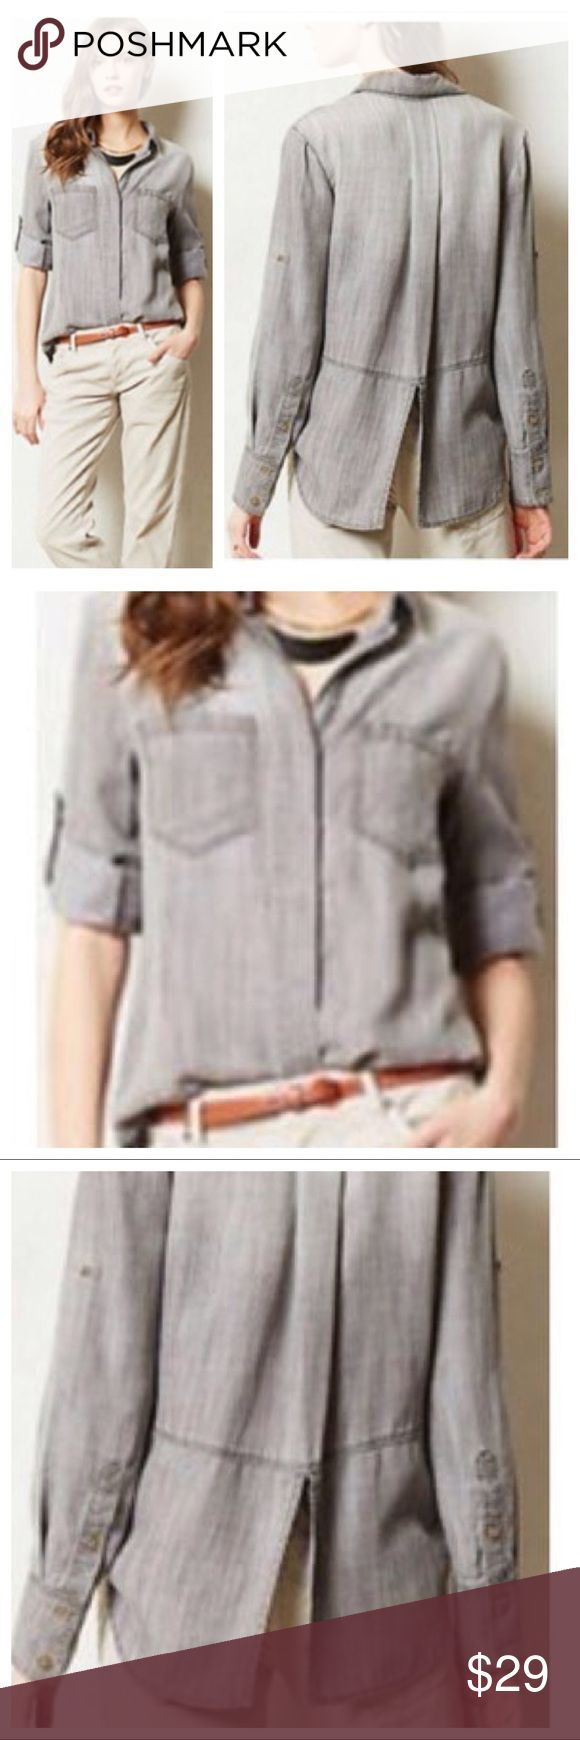 """Anthro Cloth & Stone Chambray Split Tail Shirt Anthropologie Cloth & Stone Gray Chambray Split-Tail Shirt. Material is 100% Tencel and machine washable. Two front pockets, hidden button front closure, long sleeve which can be rolled and button to 3/4 sleeves. Size Large, 18"""" arm inseam, 22"""" armpit to armpit, 25.5"""" front length, 30"""" back length. Pre-loved with little wear, no rips or stains. Anthropologie Tops Button Down Shirts"""